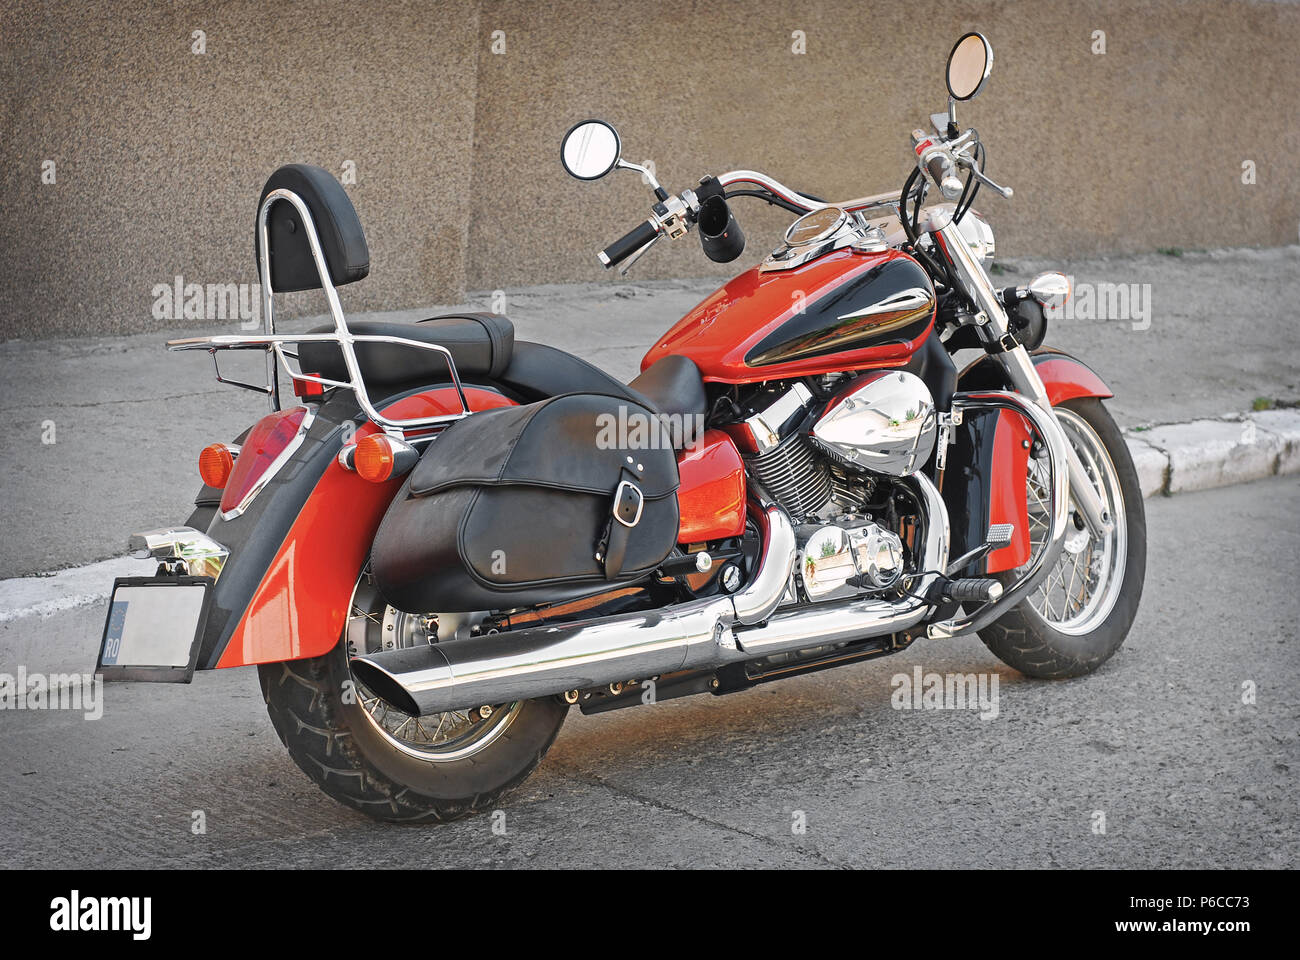 vintage chopper motorcycle parked - Stock Image